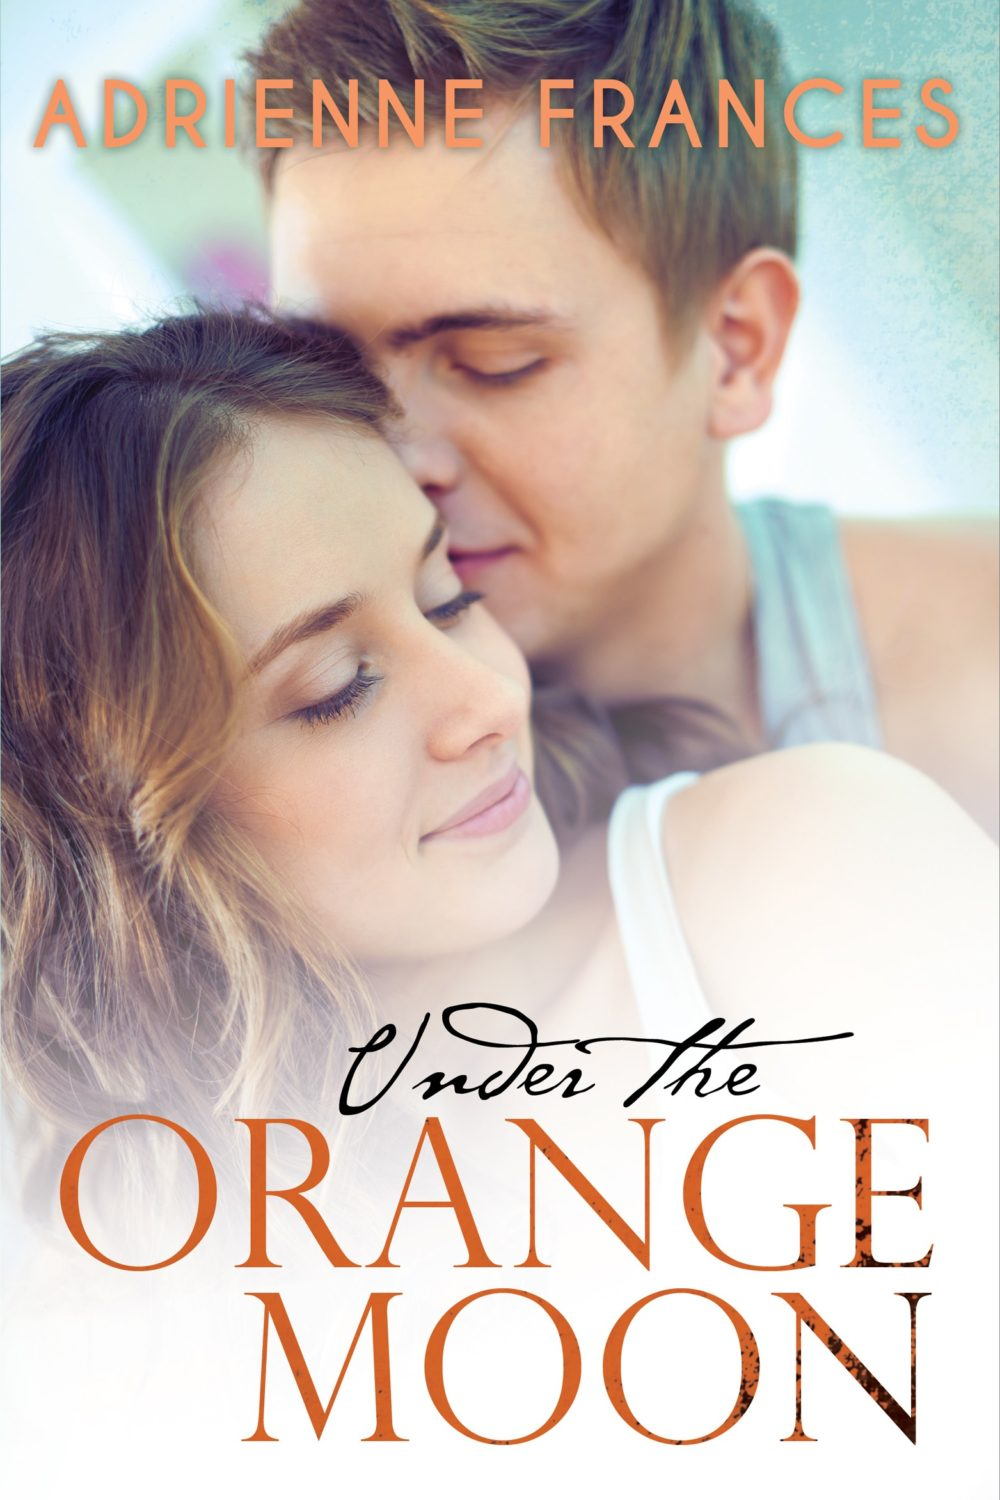 Under The Orange Moon by Adrienne Frances SALE!